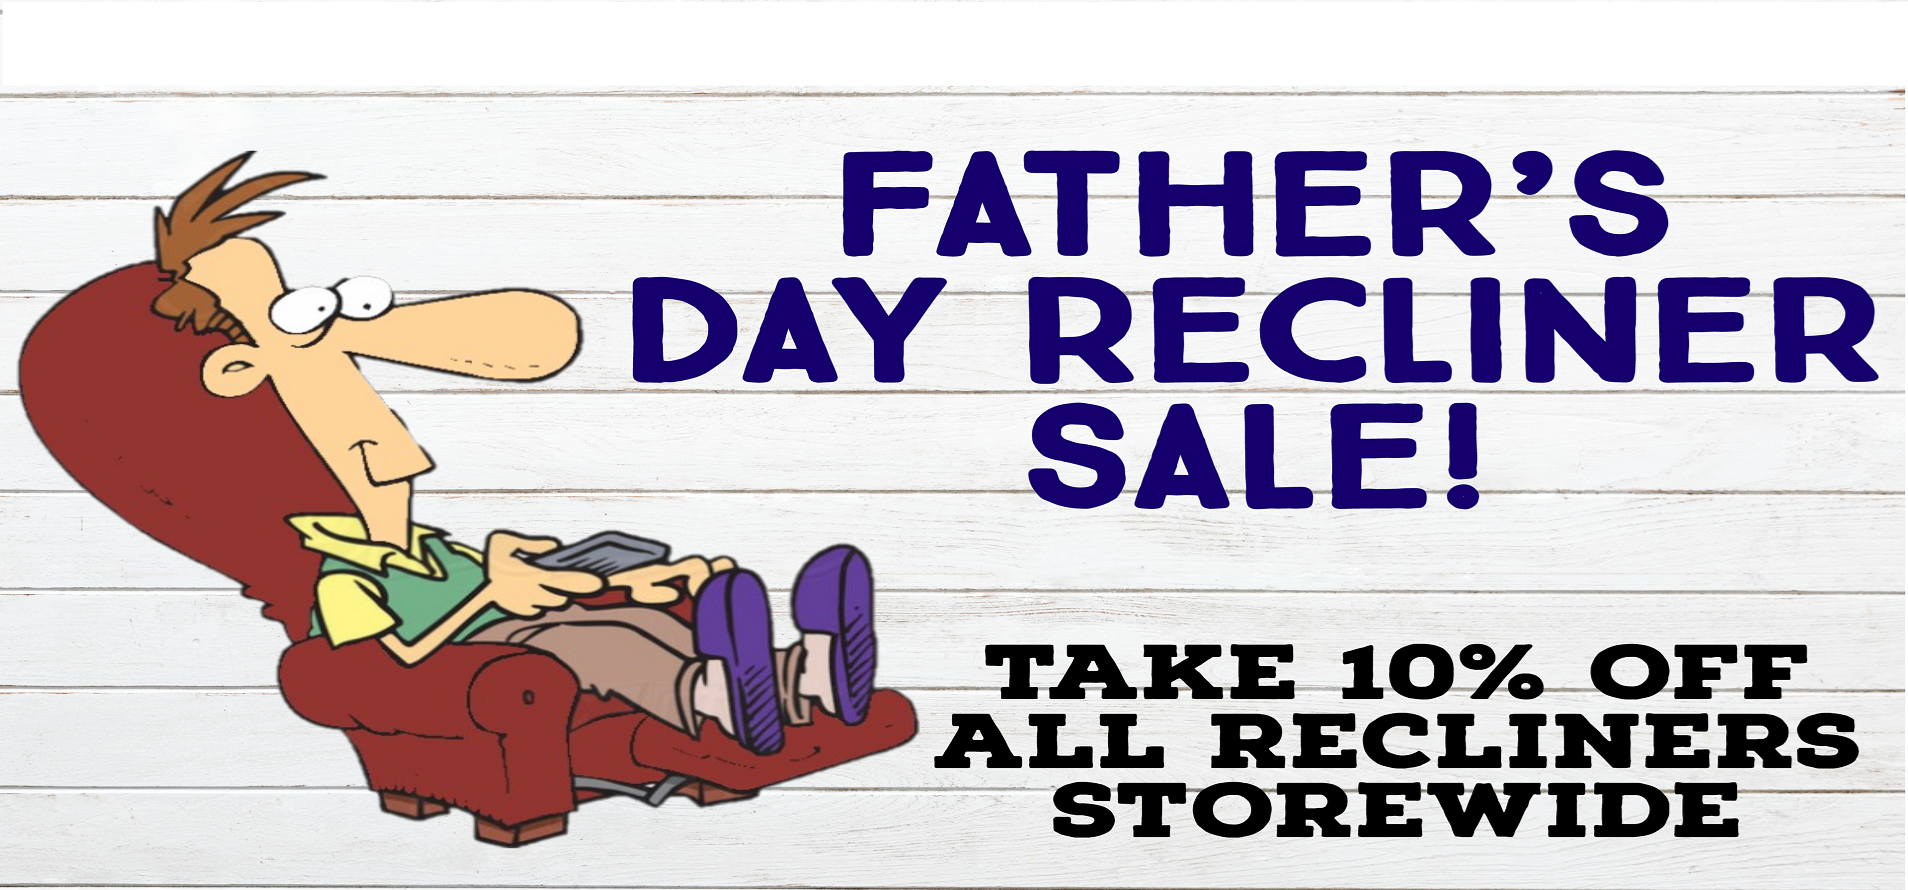 Save 10% ON ALL RECLINERS